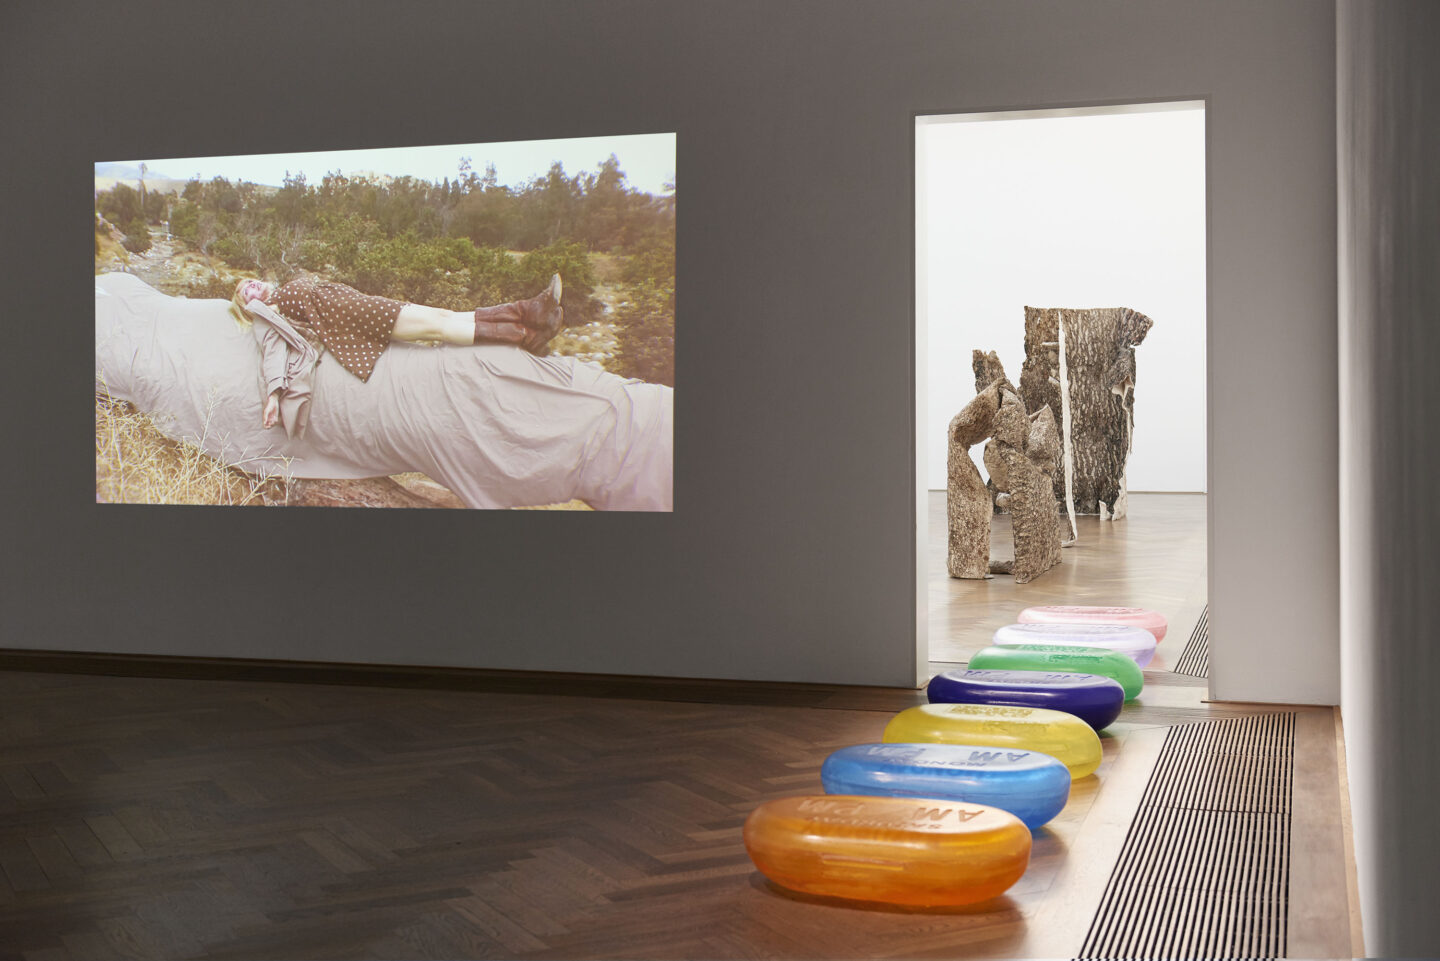 Exhibition View Kaari Upson Soloshow «Go Back the Way You Came» at Kunsthalle Basel, Basel, 2019 / Photo: Philipp Hänger / Courtesy: the artist and Kunsthalle Basel